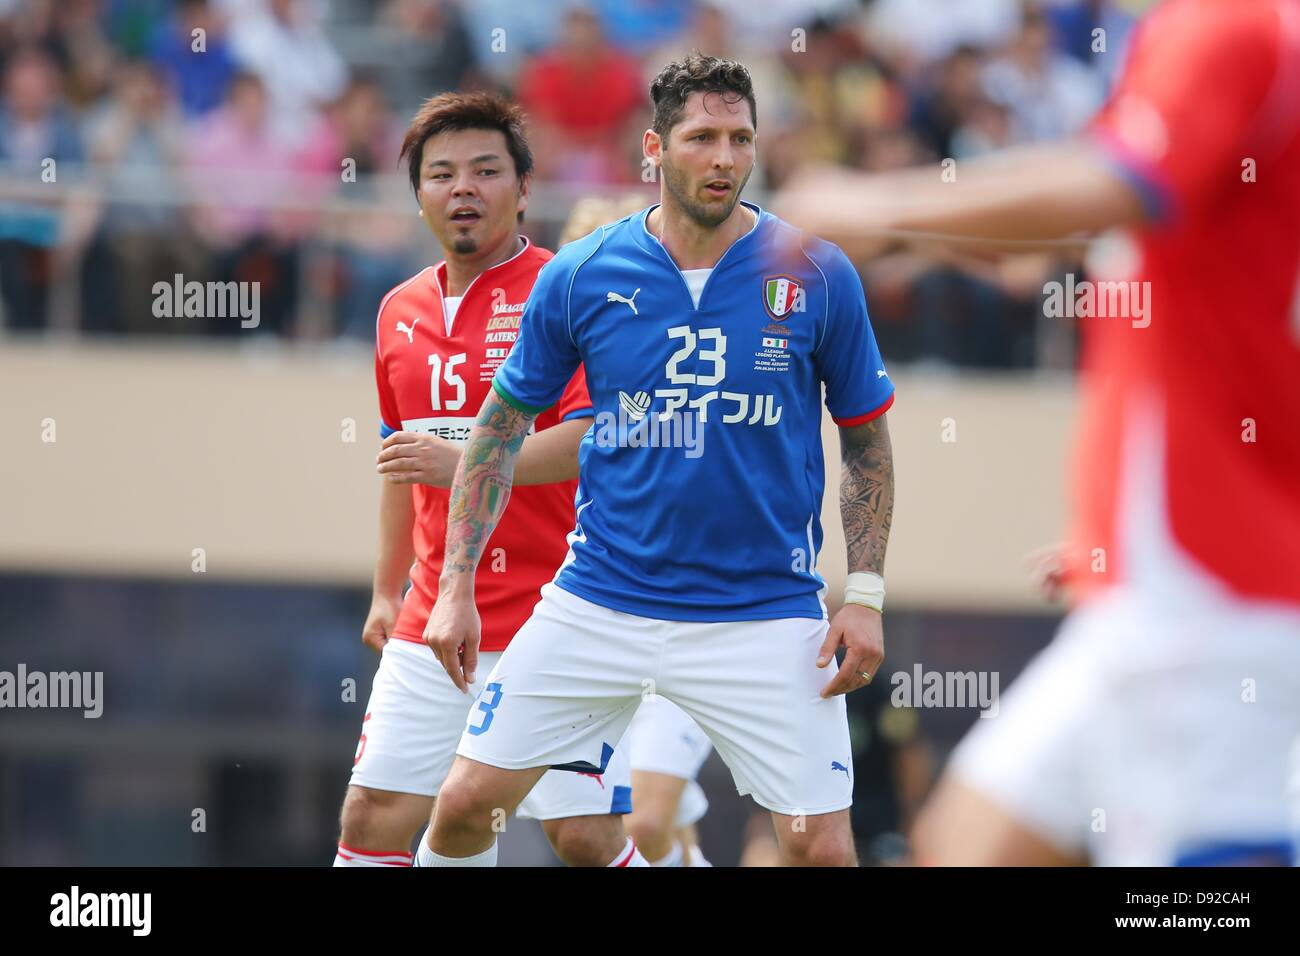 Marco Materazzi Stock Photos & Marco Materazzi Stock Images - Page 2 ...